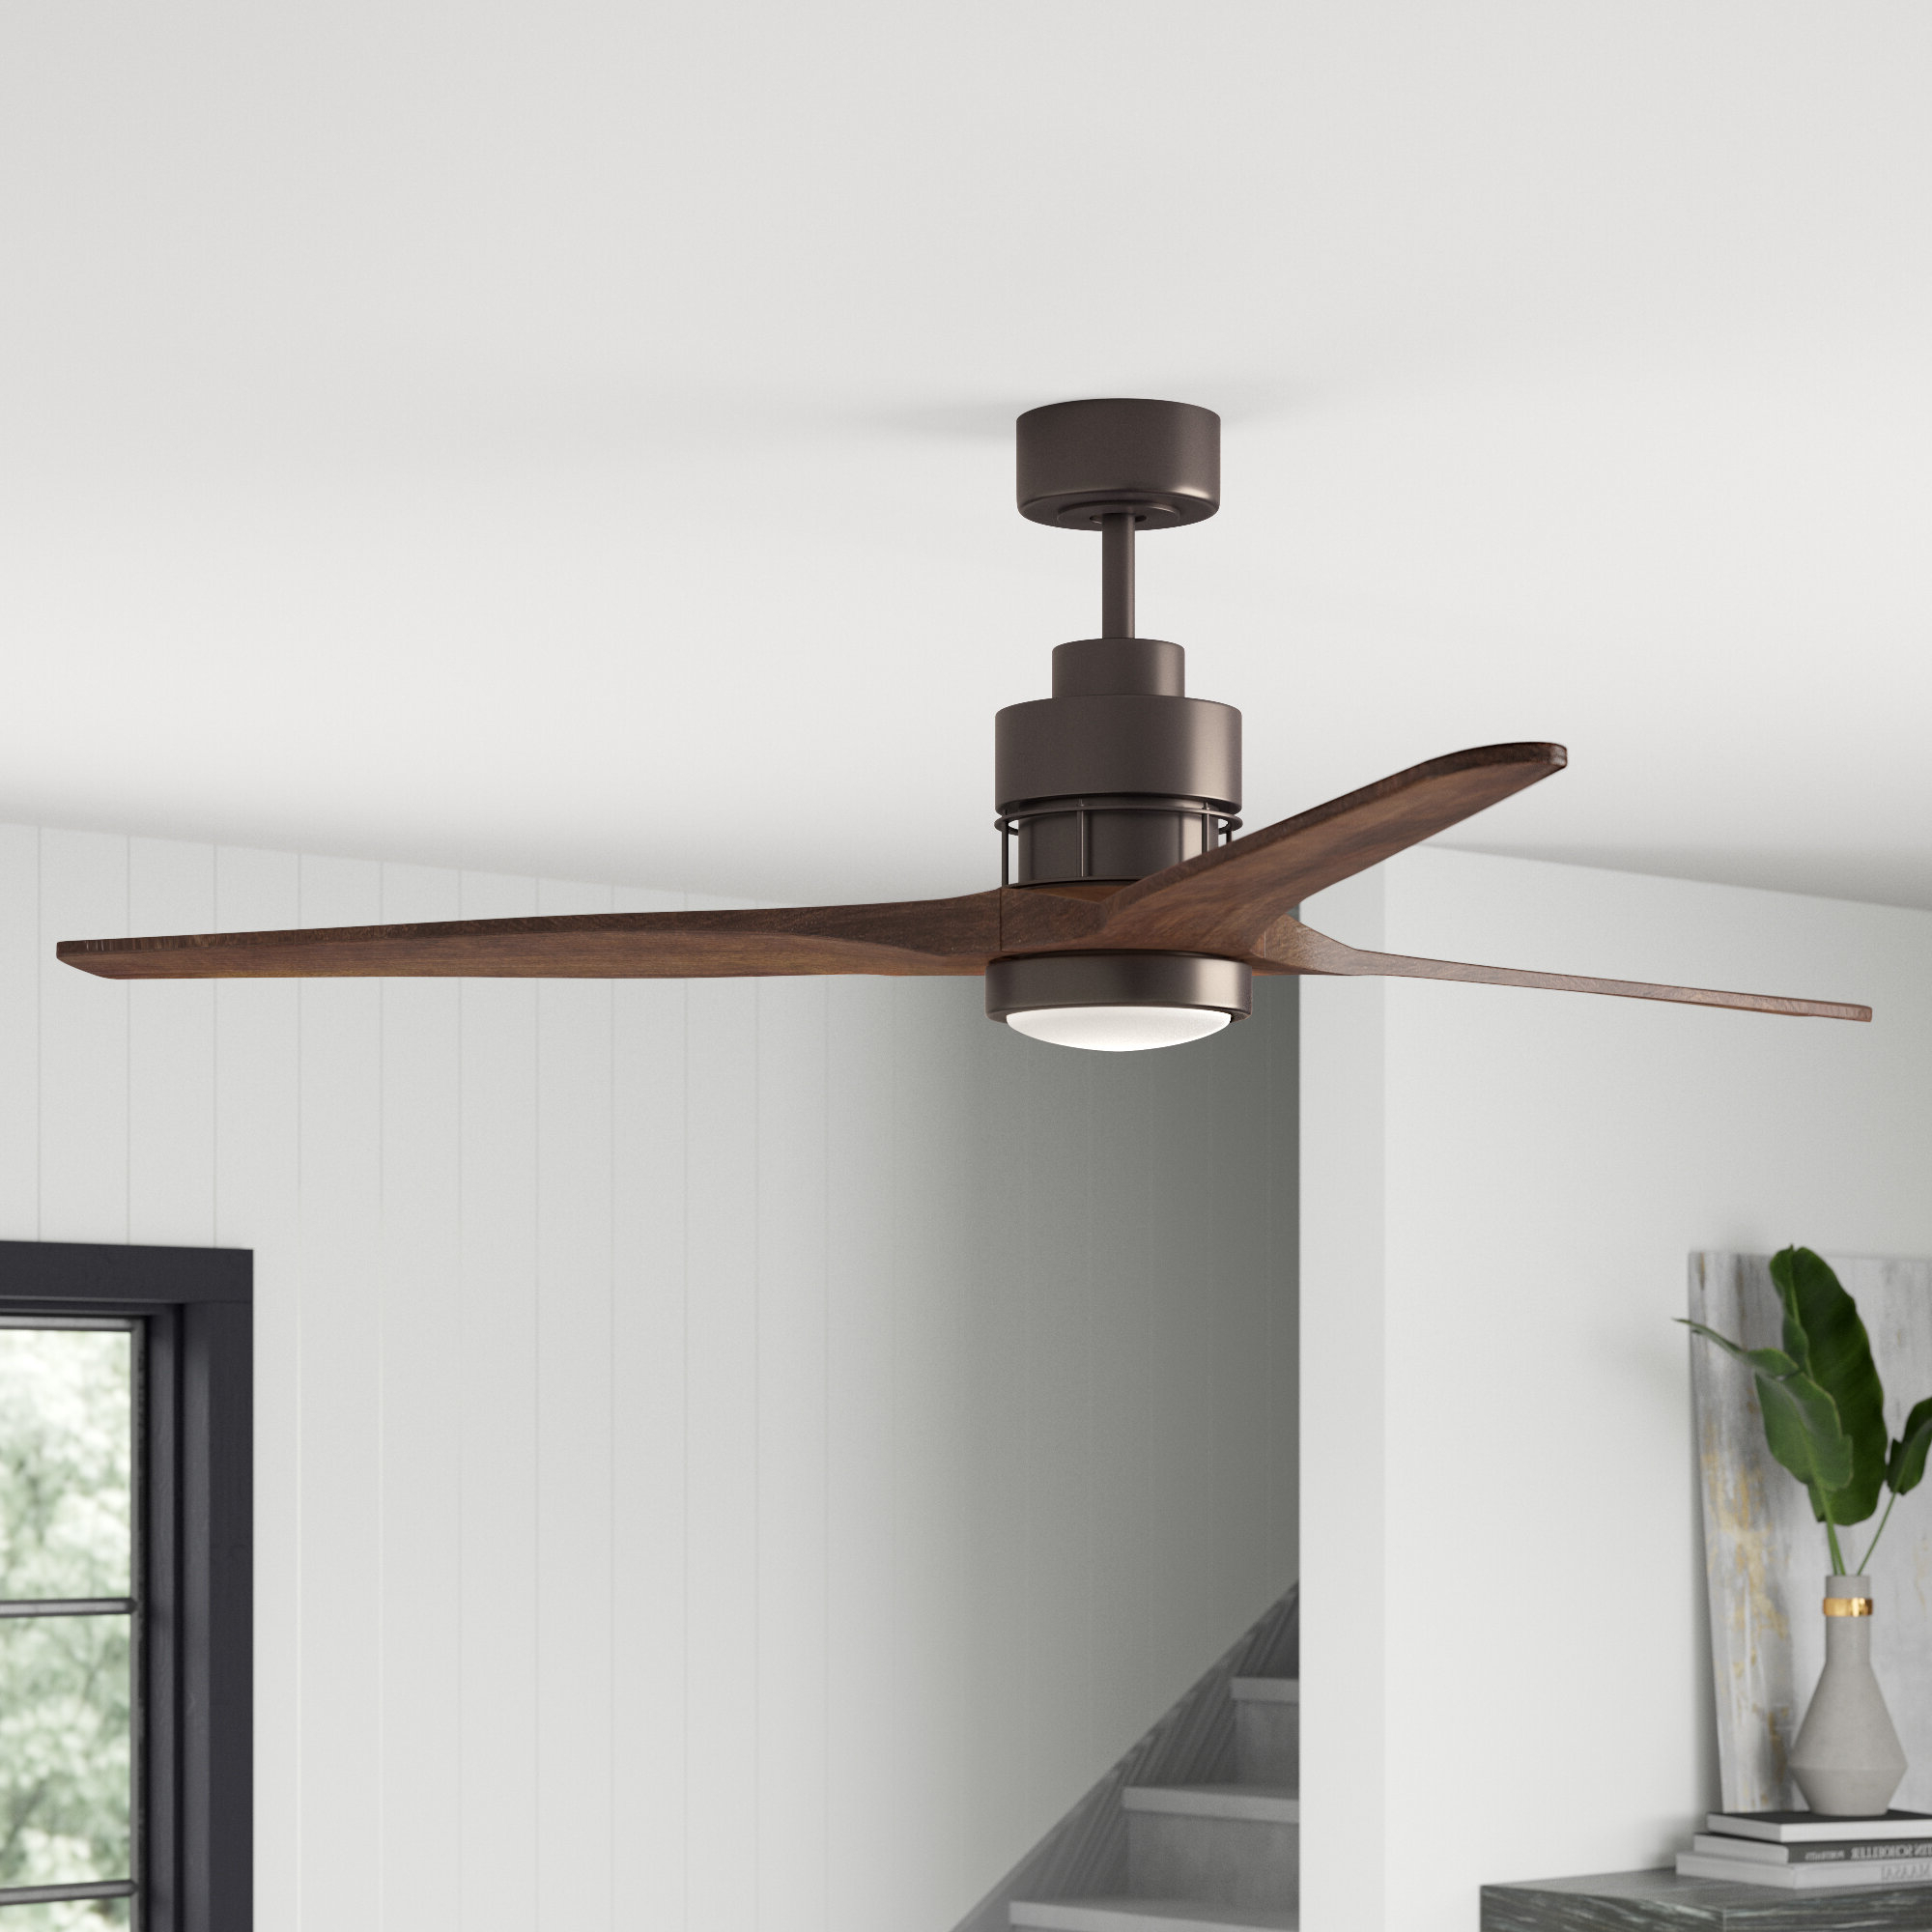 """70"""" Mcdaniels 3 Blade Led Ceiling Fan With Remote, Light Kit Included Inside Most Popular Corsa 3 Blade Ceiling Fans (View 12 of 20)"""